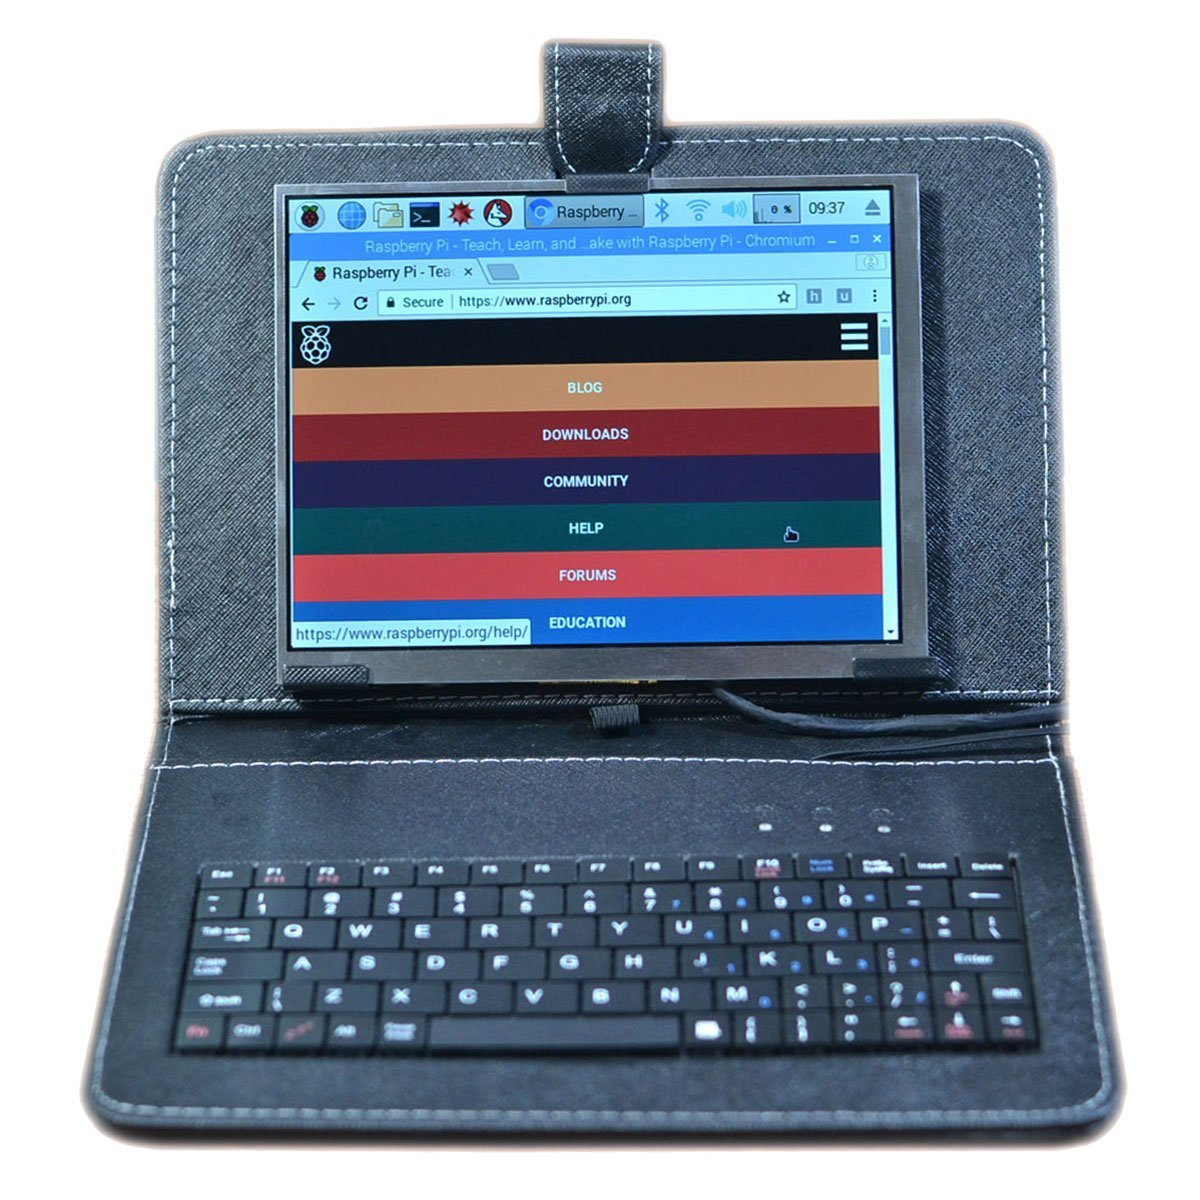 SUNKEE 8 Inch 1024x768 IPS Great Angle-Visibility and LCD Display For Raspberry Pi 3 B+ (B Plus) +HDMI With USB Leather Case Keyboard Wifi Adapter Mouse (No Raspberry Pi contain)